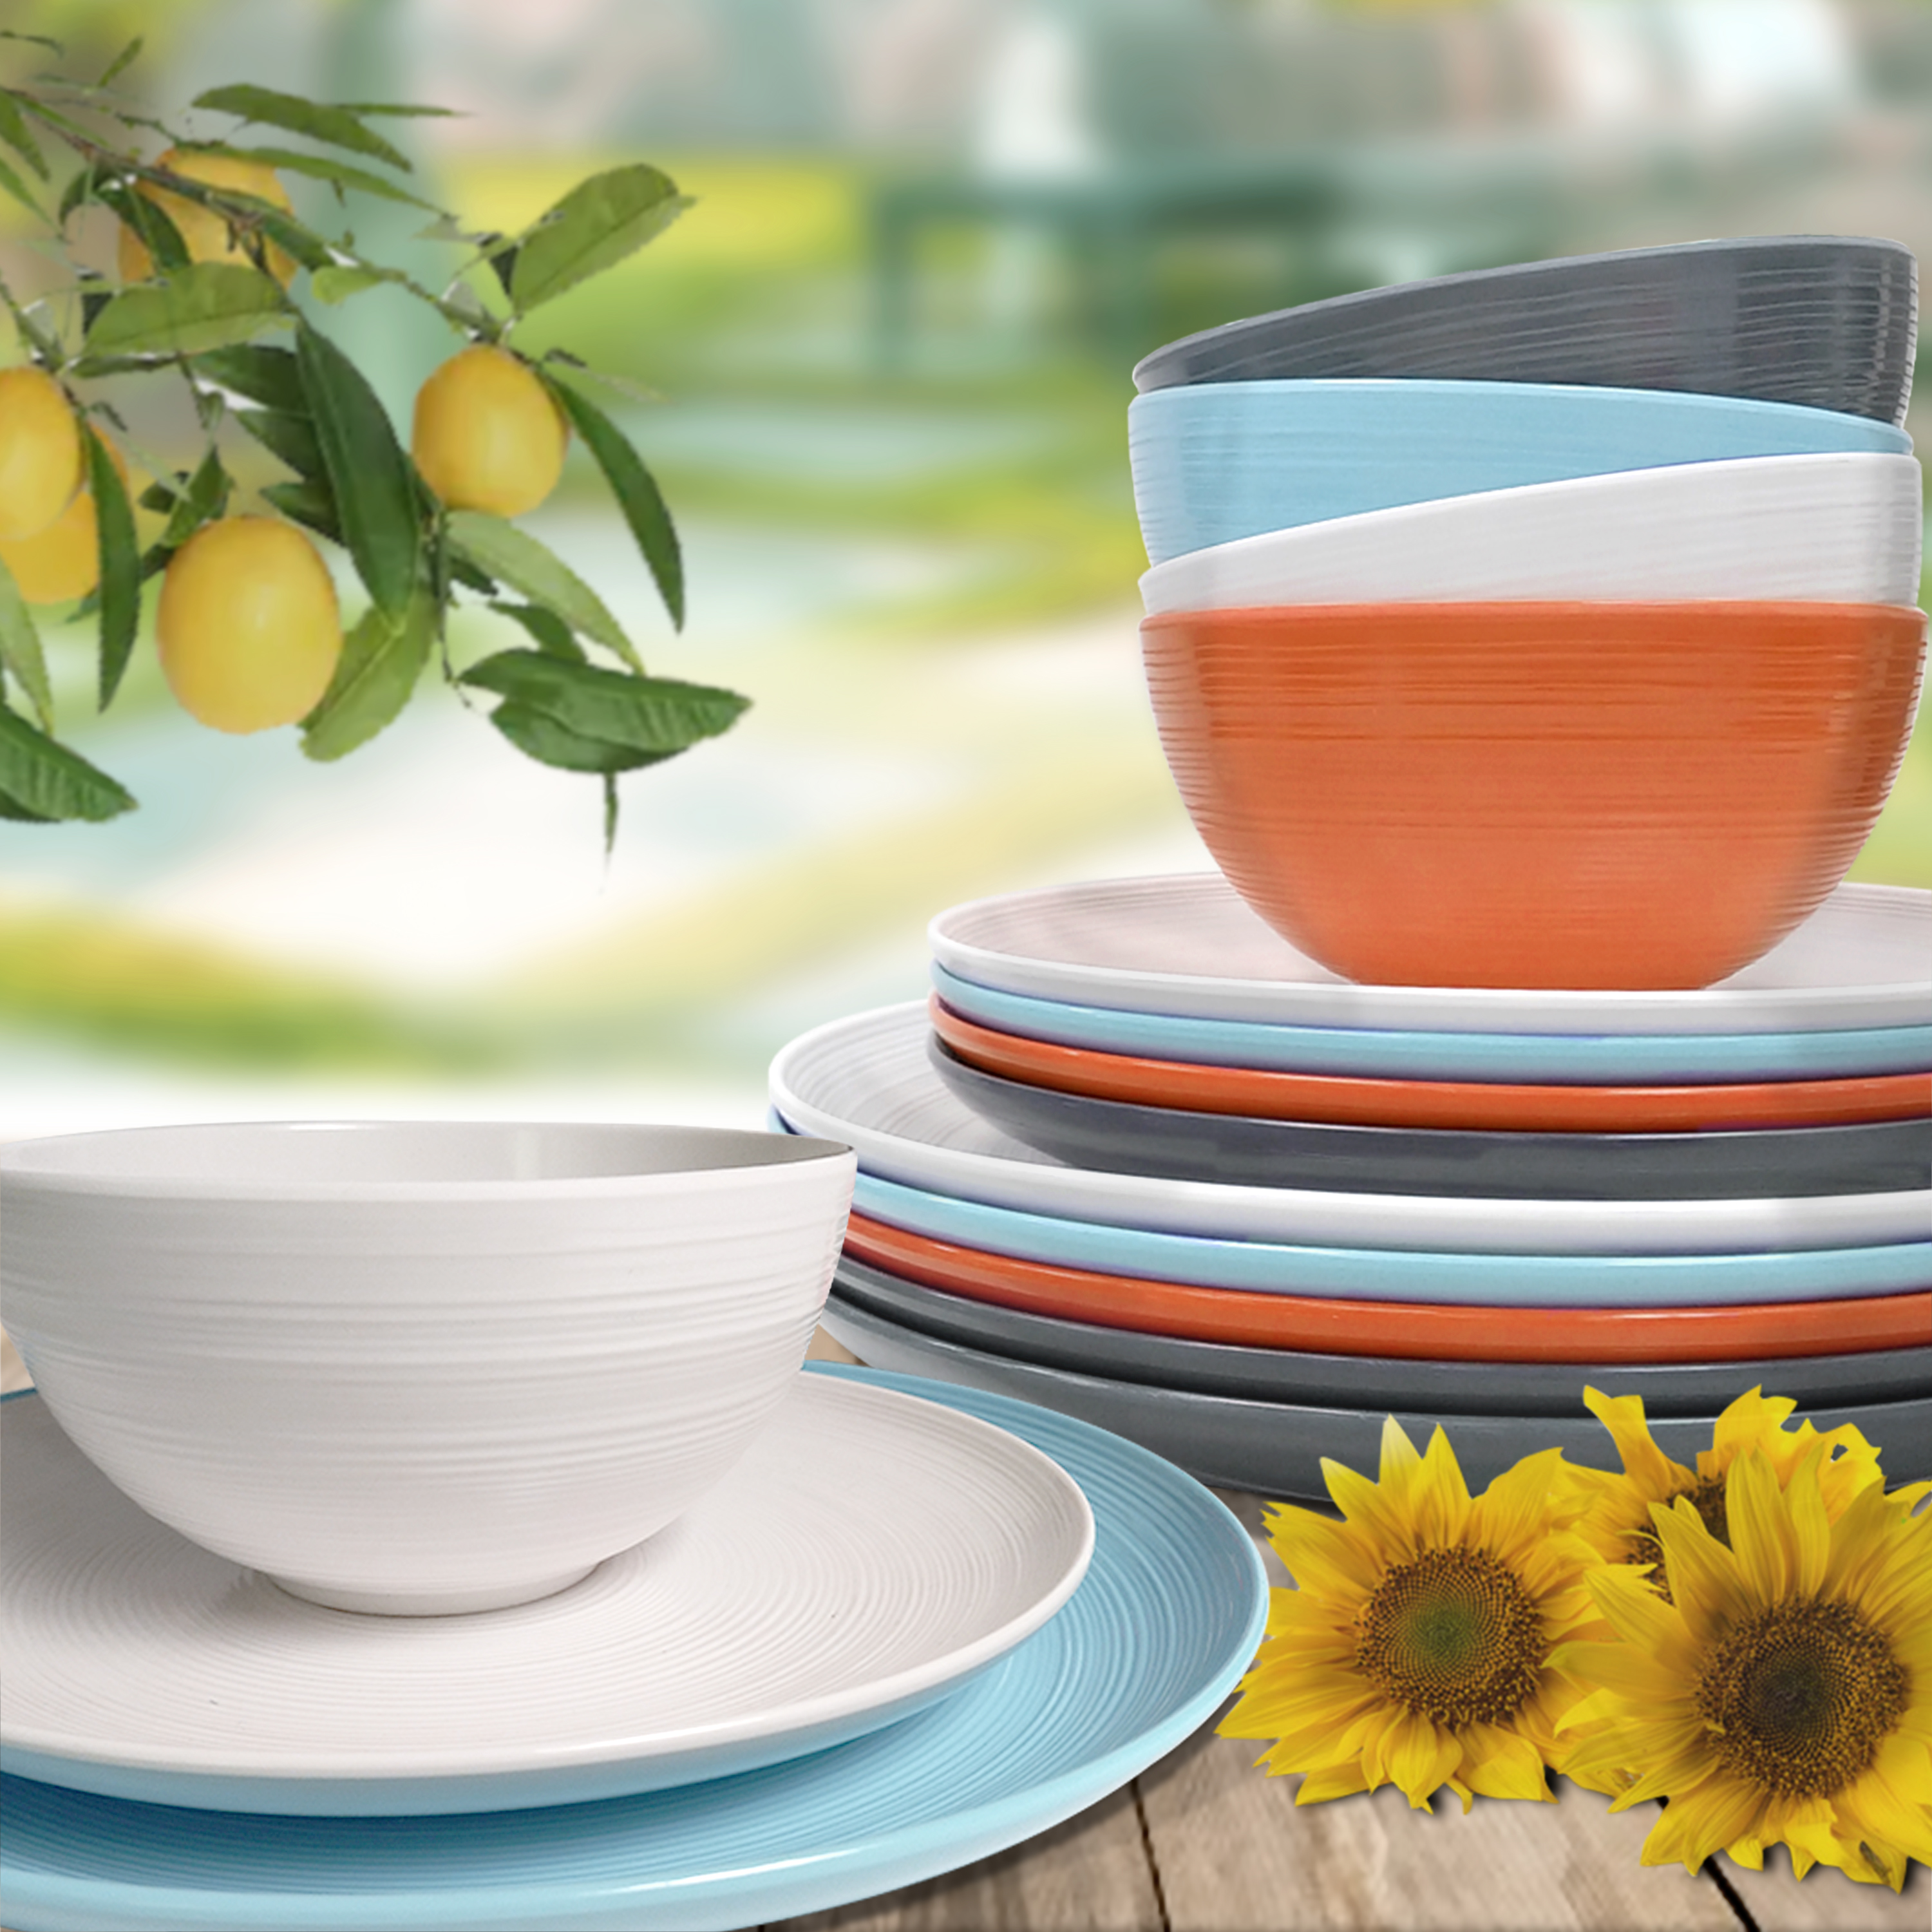 American Conventional Plate & Bowl Sets, Orange, 12-piece set slideshow image 8